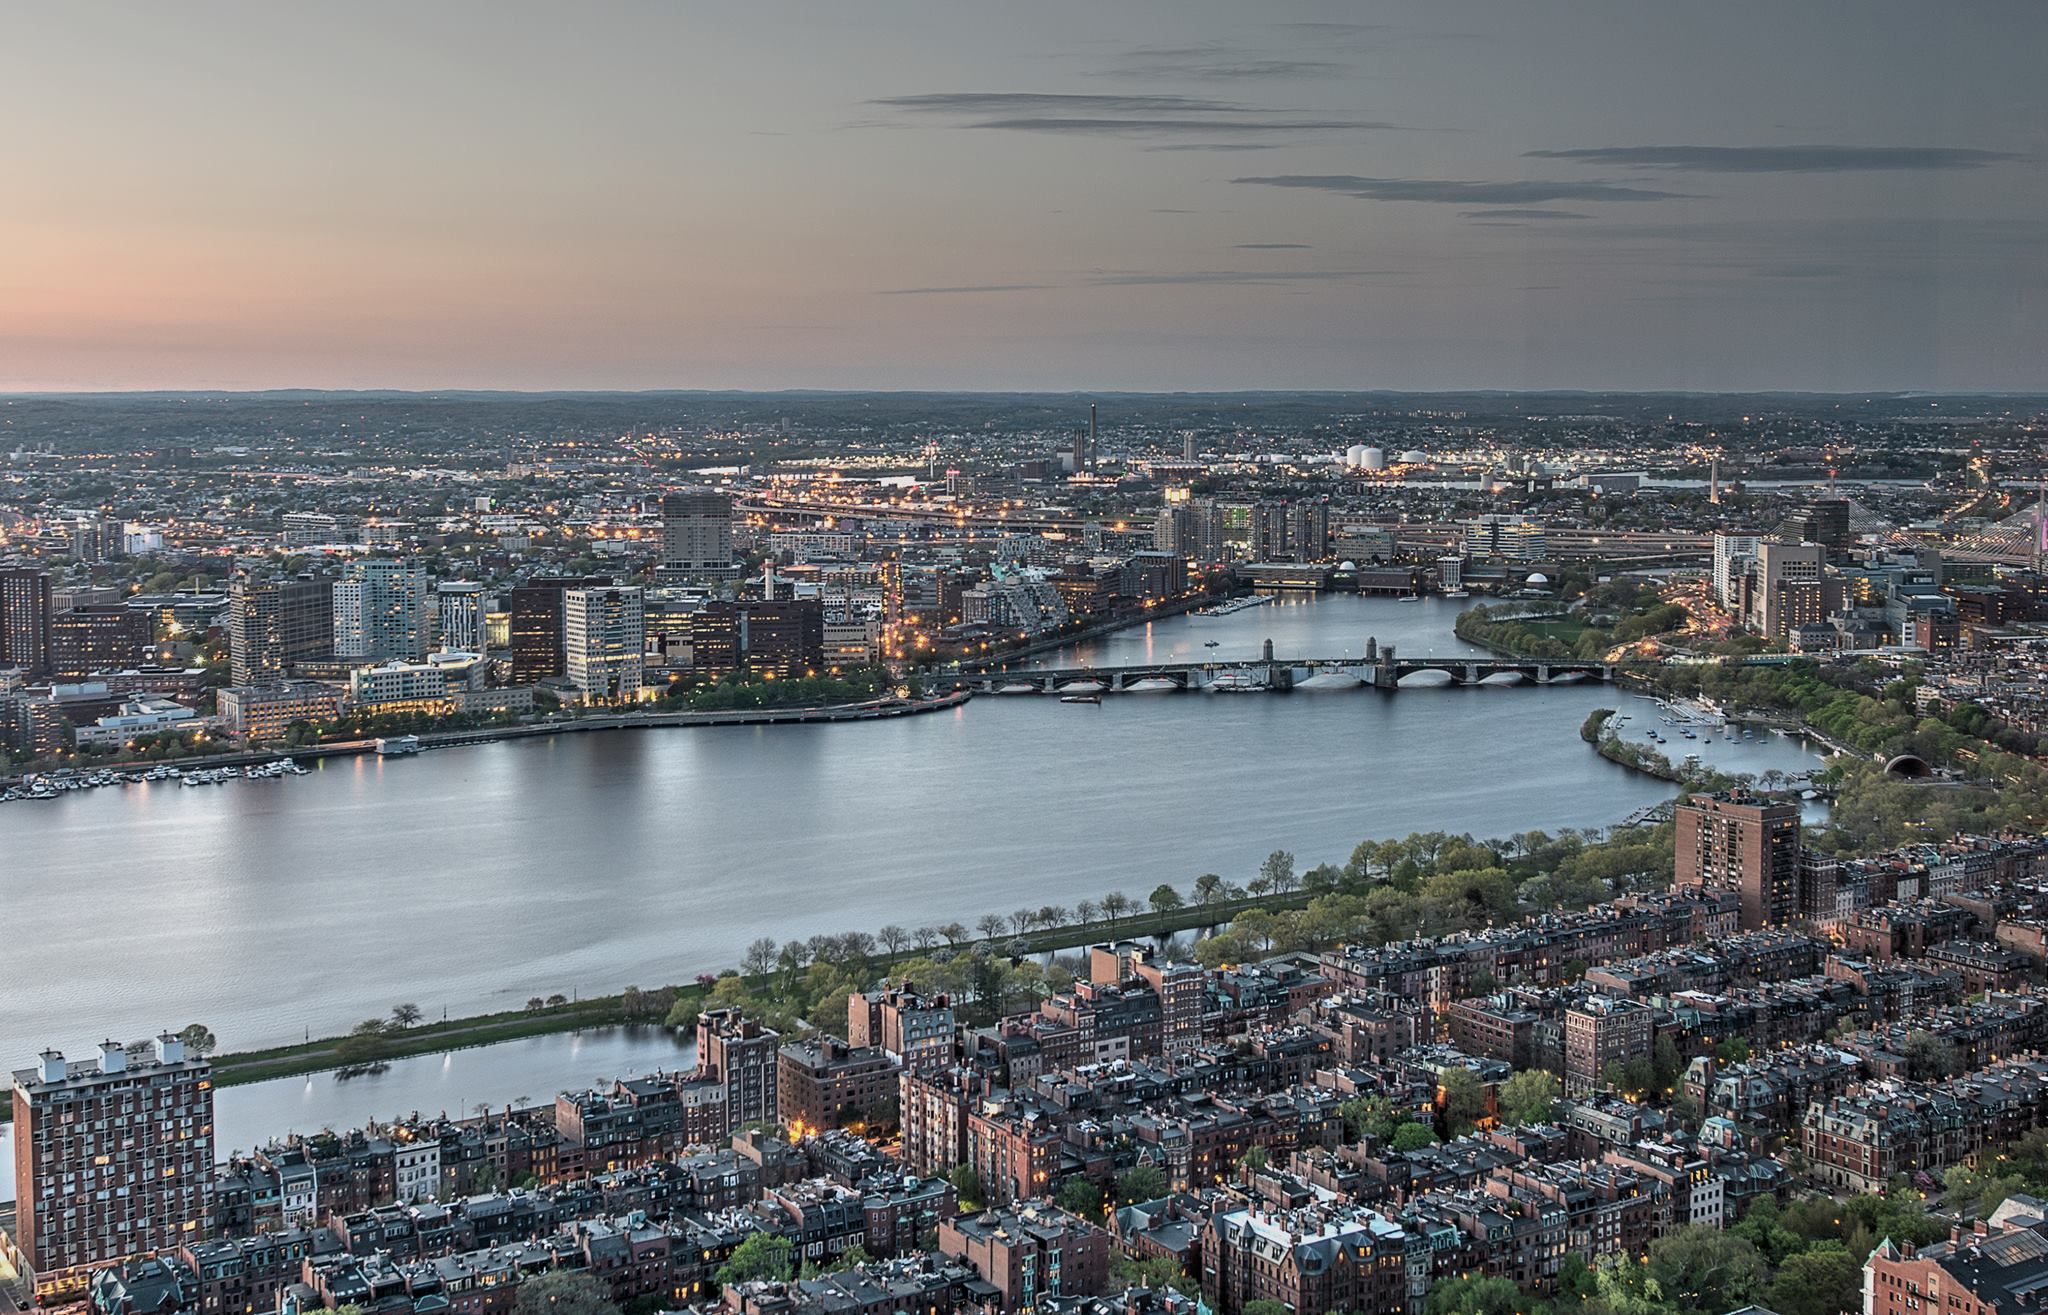 A new poll concerning Boston's proposed bid for the 2024 Olympic and Paralympic Games has shown support continues to decline ©No Boston Olympics/Facebook